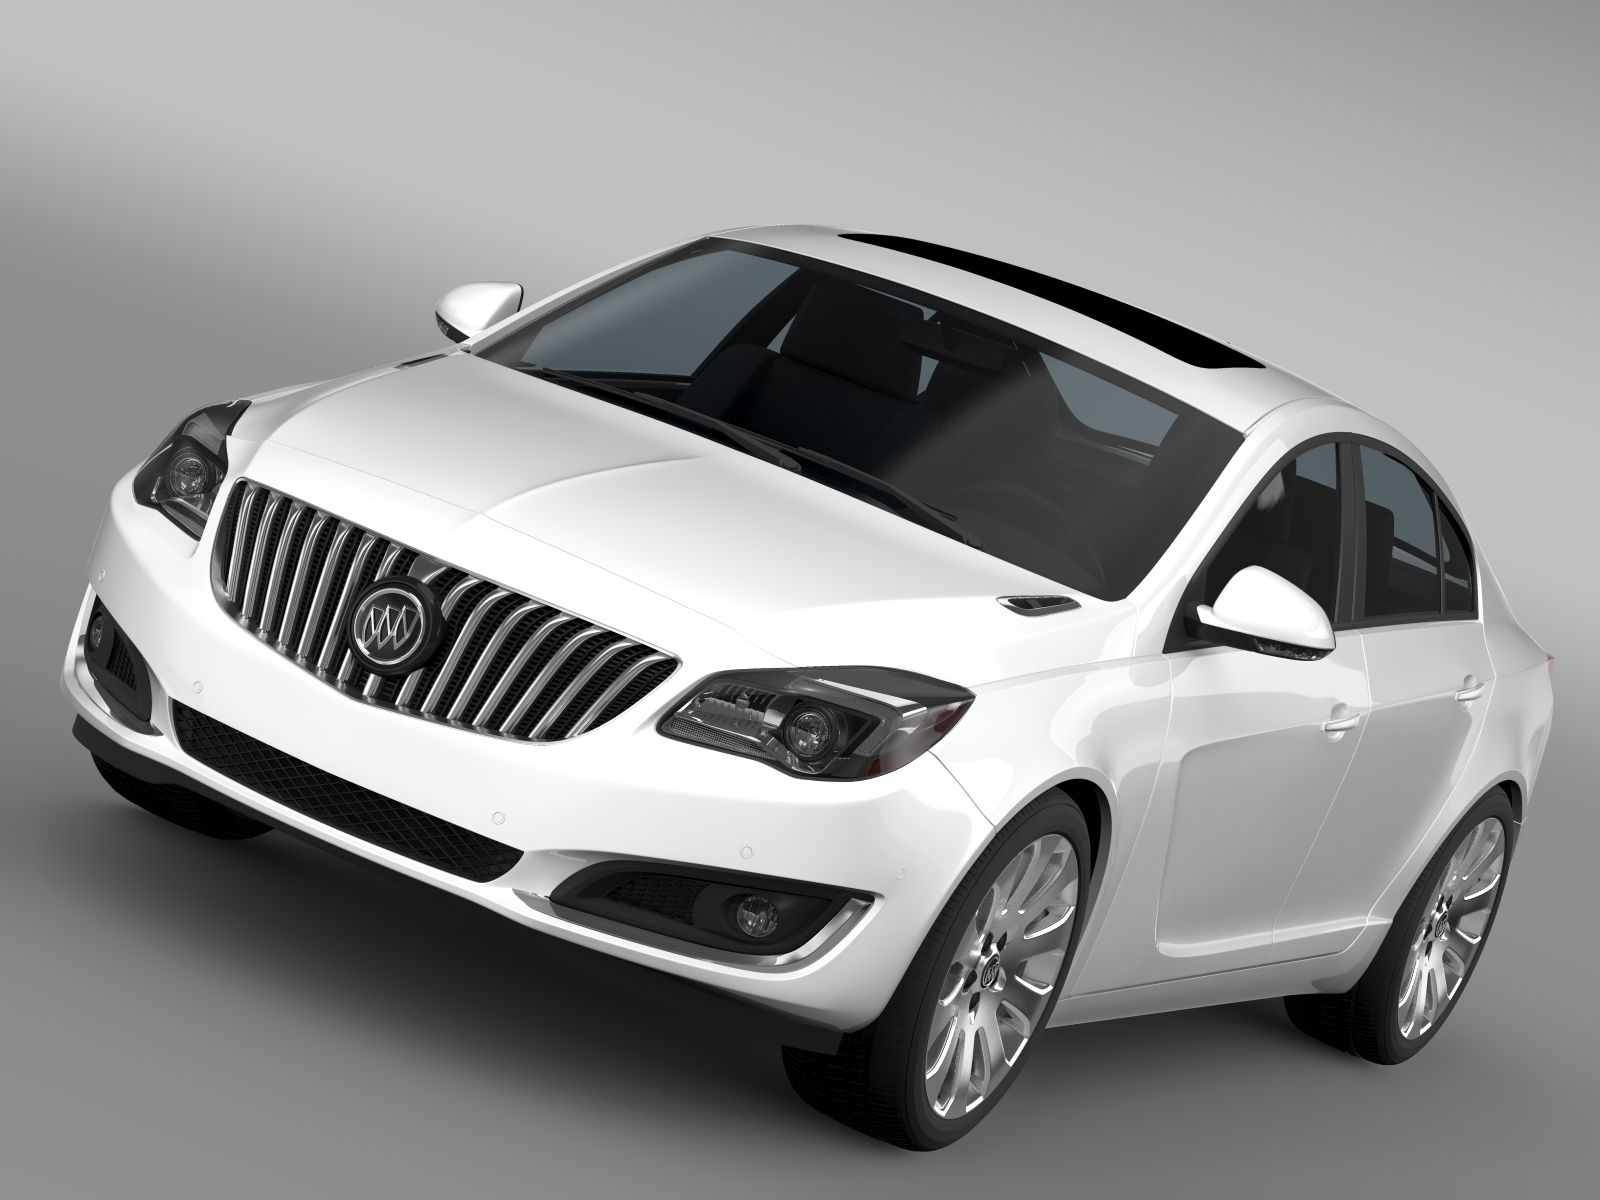 buick regal flexfuel 2015 3d model 3ds max fbx c4d lwo ma mb hrc xsi obj 215176